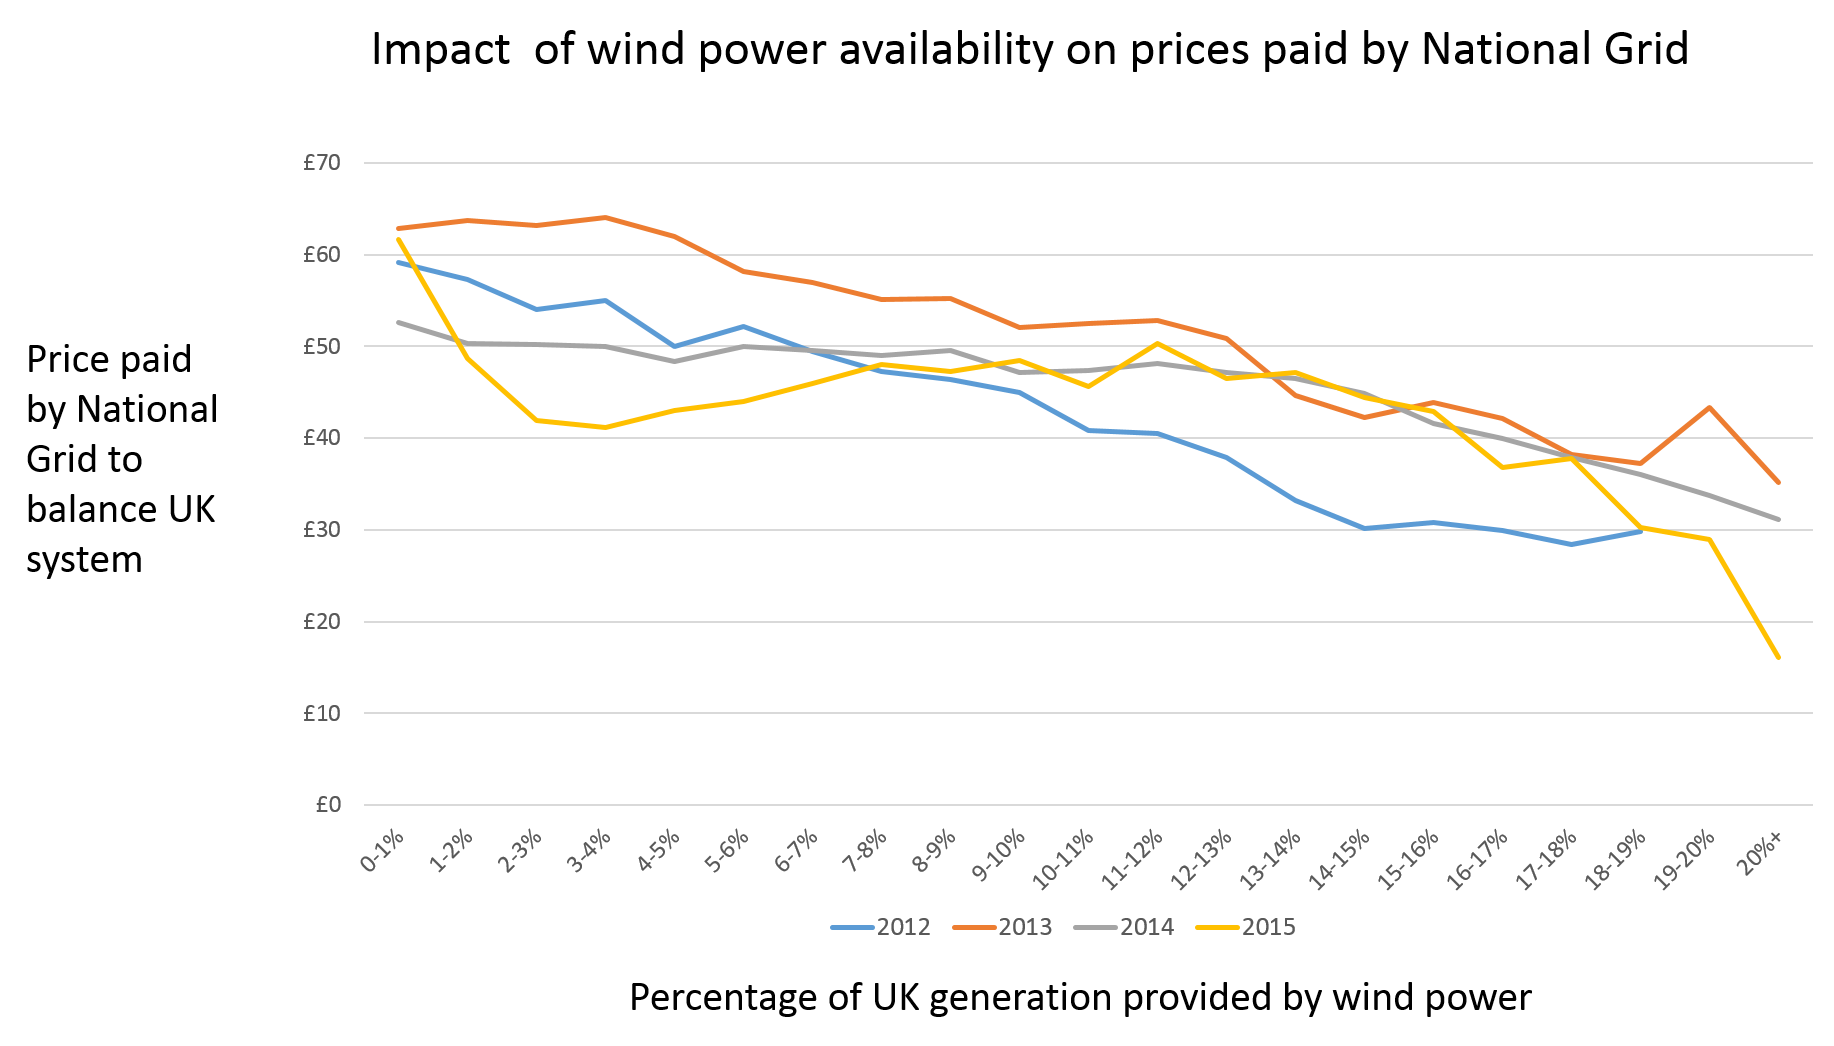 Source: Elexon data for System Buy prices June 2012 to 19th January 2015, Elexon data for wind power and total generation